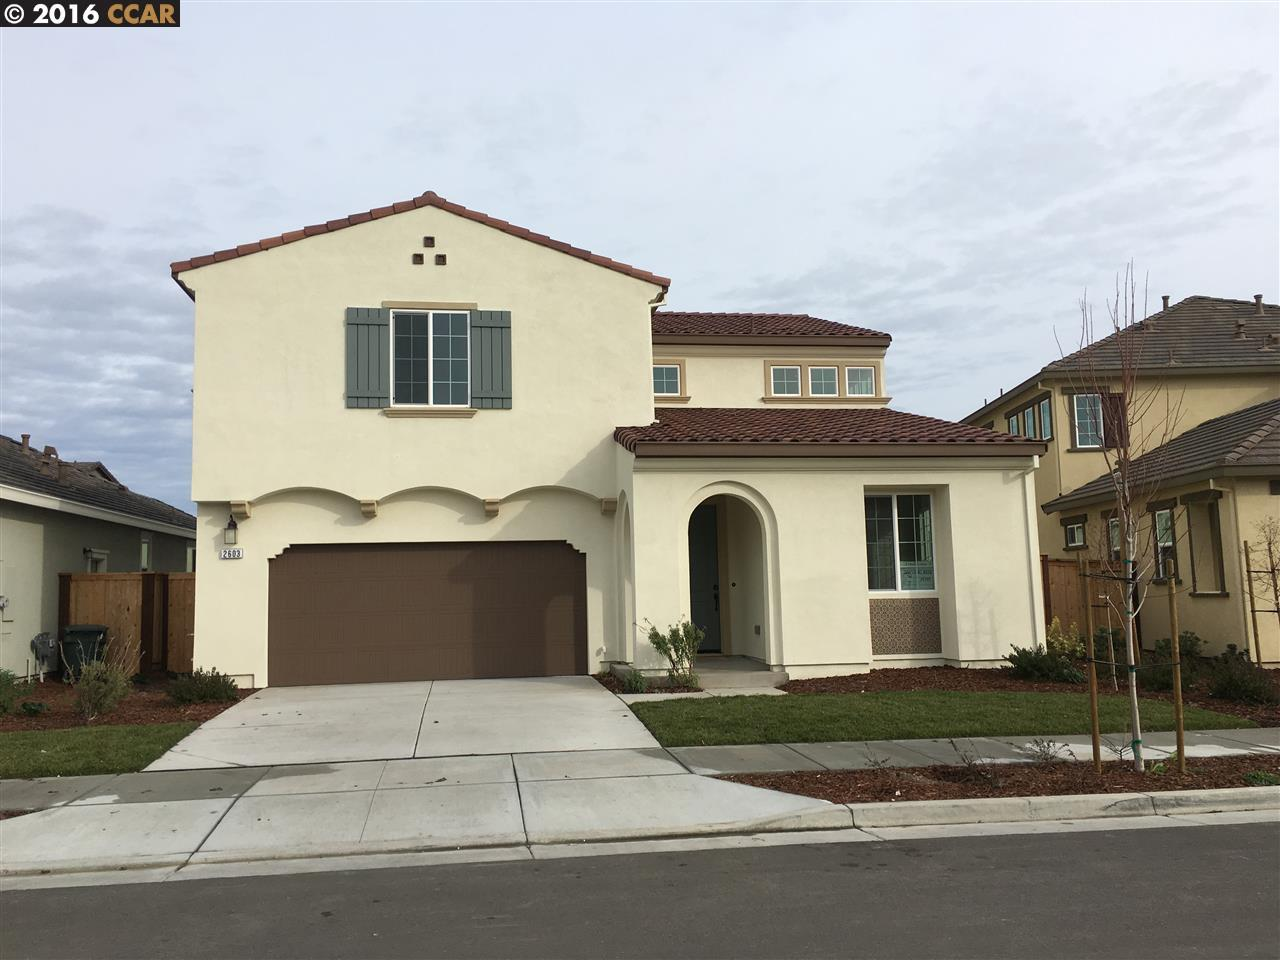 2603 Daniel Hansen Way, Tracy, CA